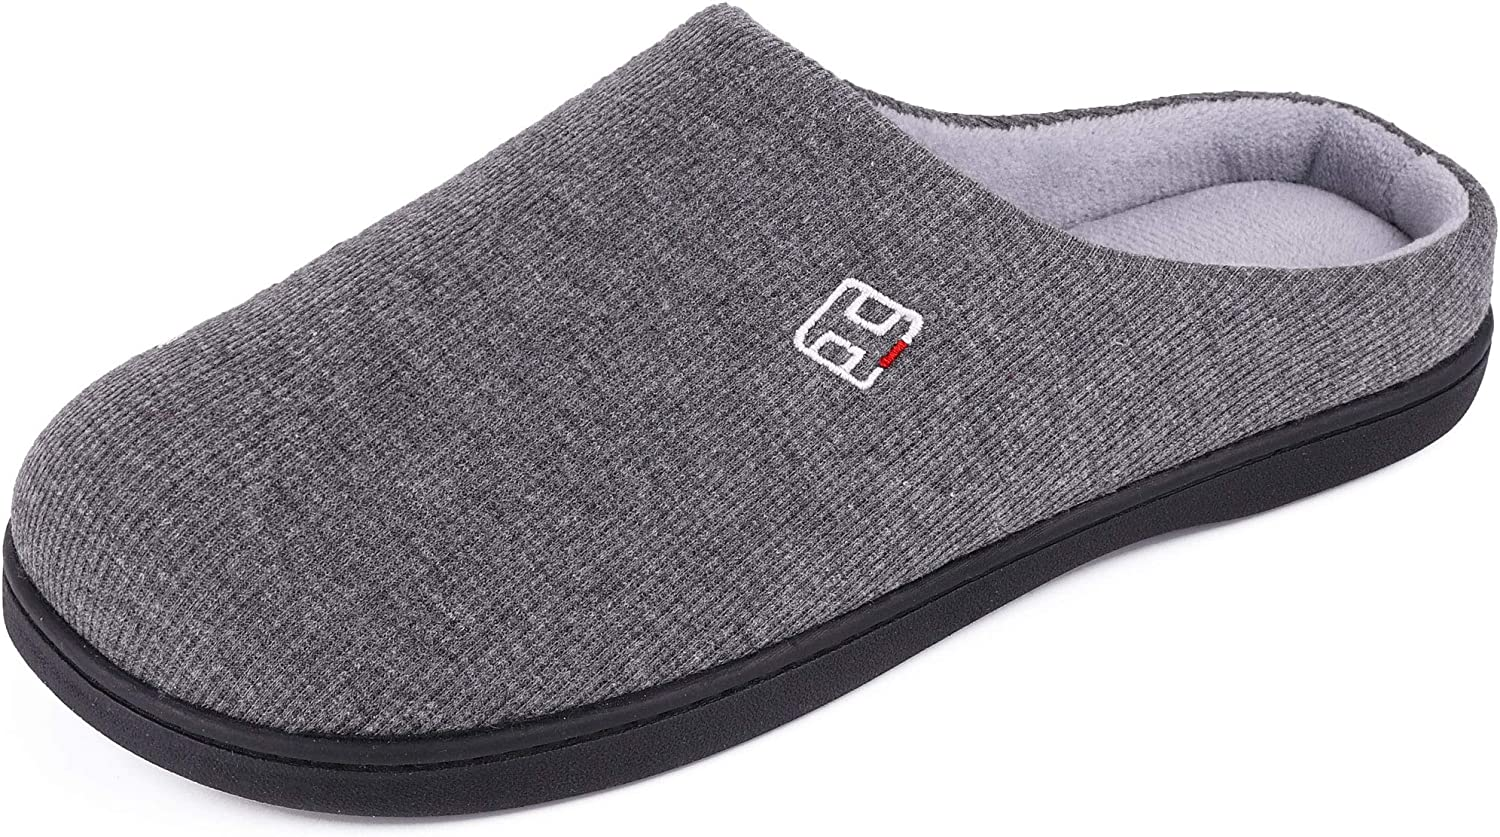 HomeIdeas Men's Classic Memory Foam House Slippers with Plush Lining, Autumn Winter Breathable Indoor/Outdoor Shoes